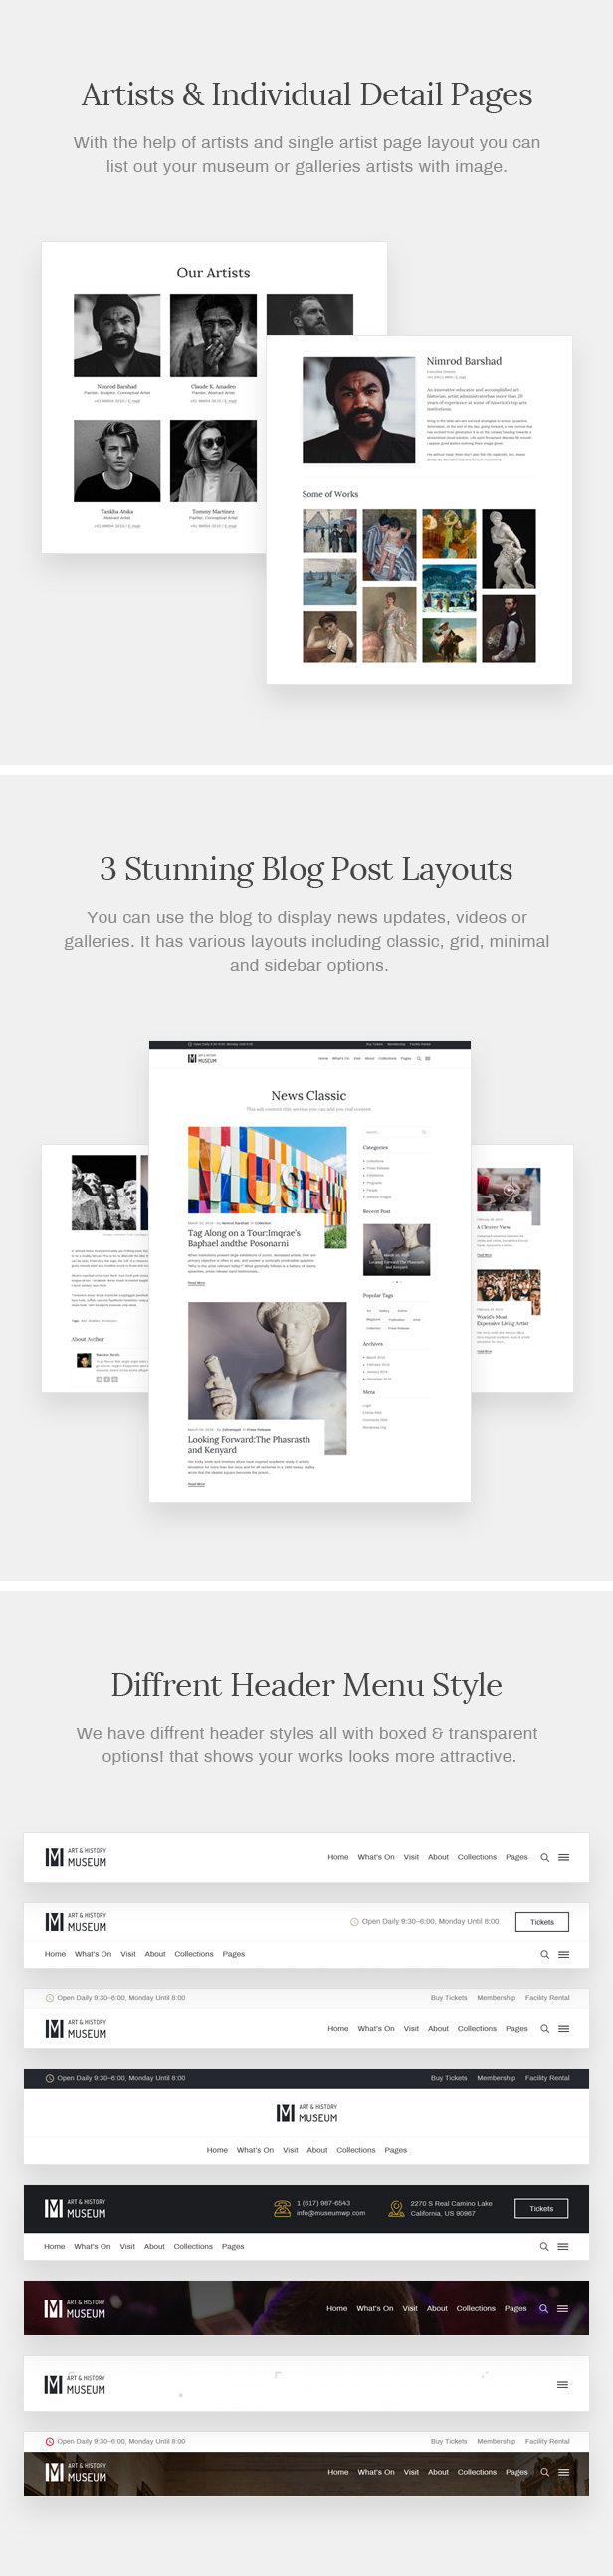 Muzze - Museum Art Gallery Exhibition WordPress Theme - 7